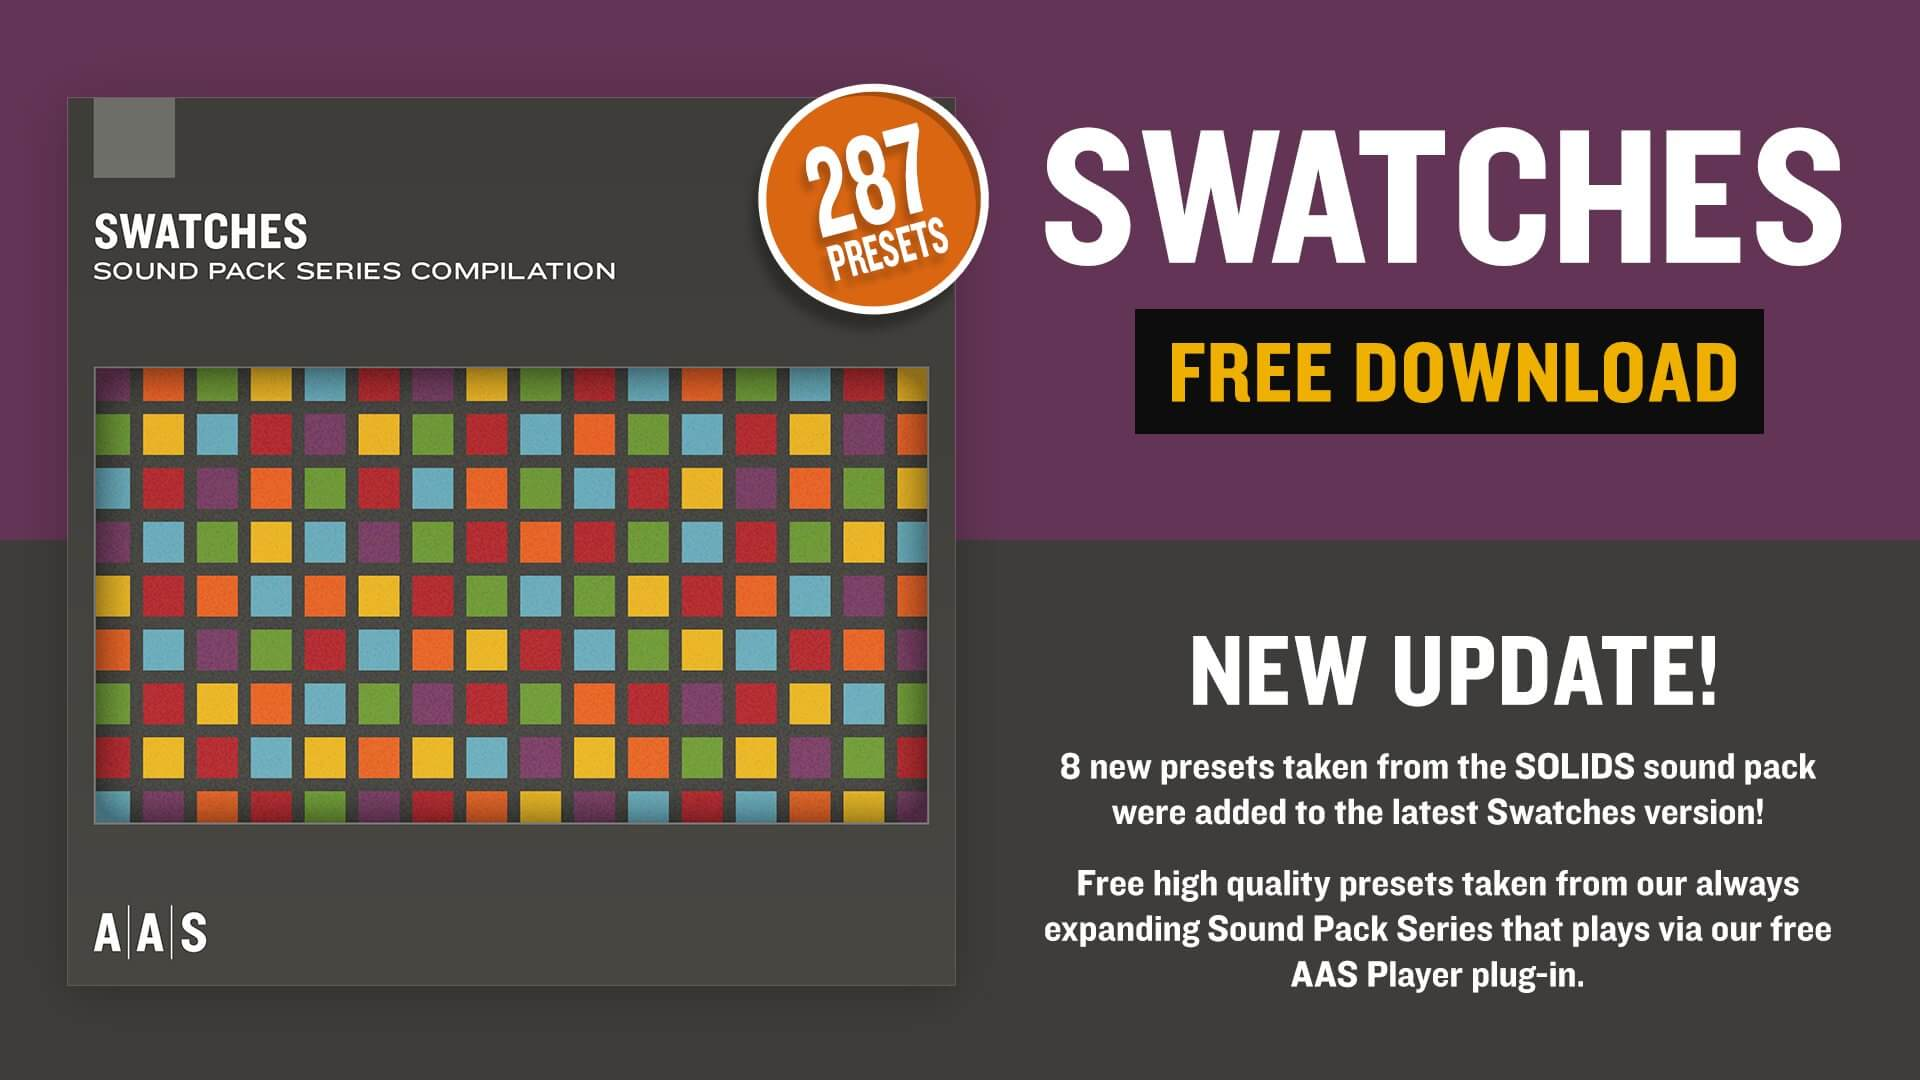 AAS Swatches FREE Sound Bank Series compilation updated